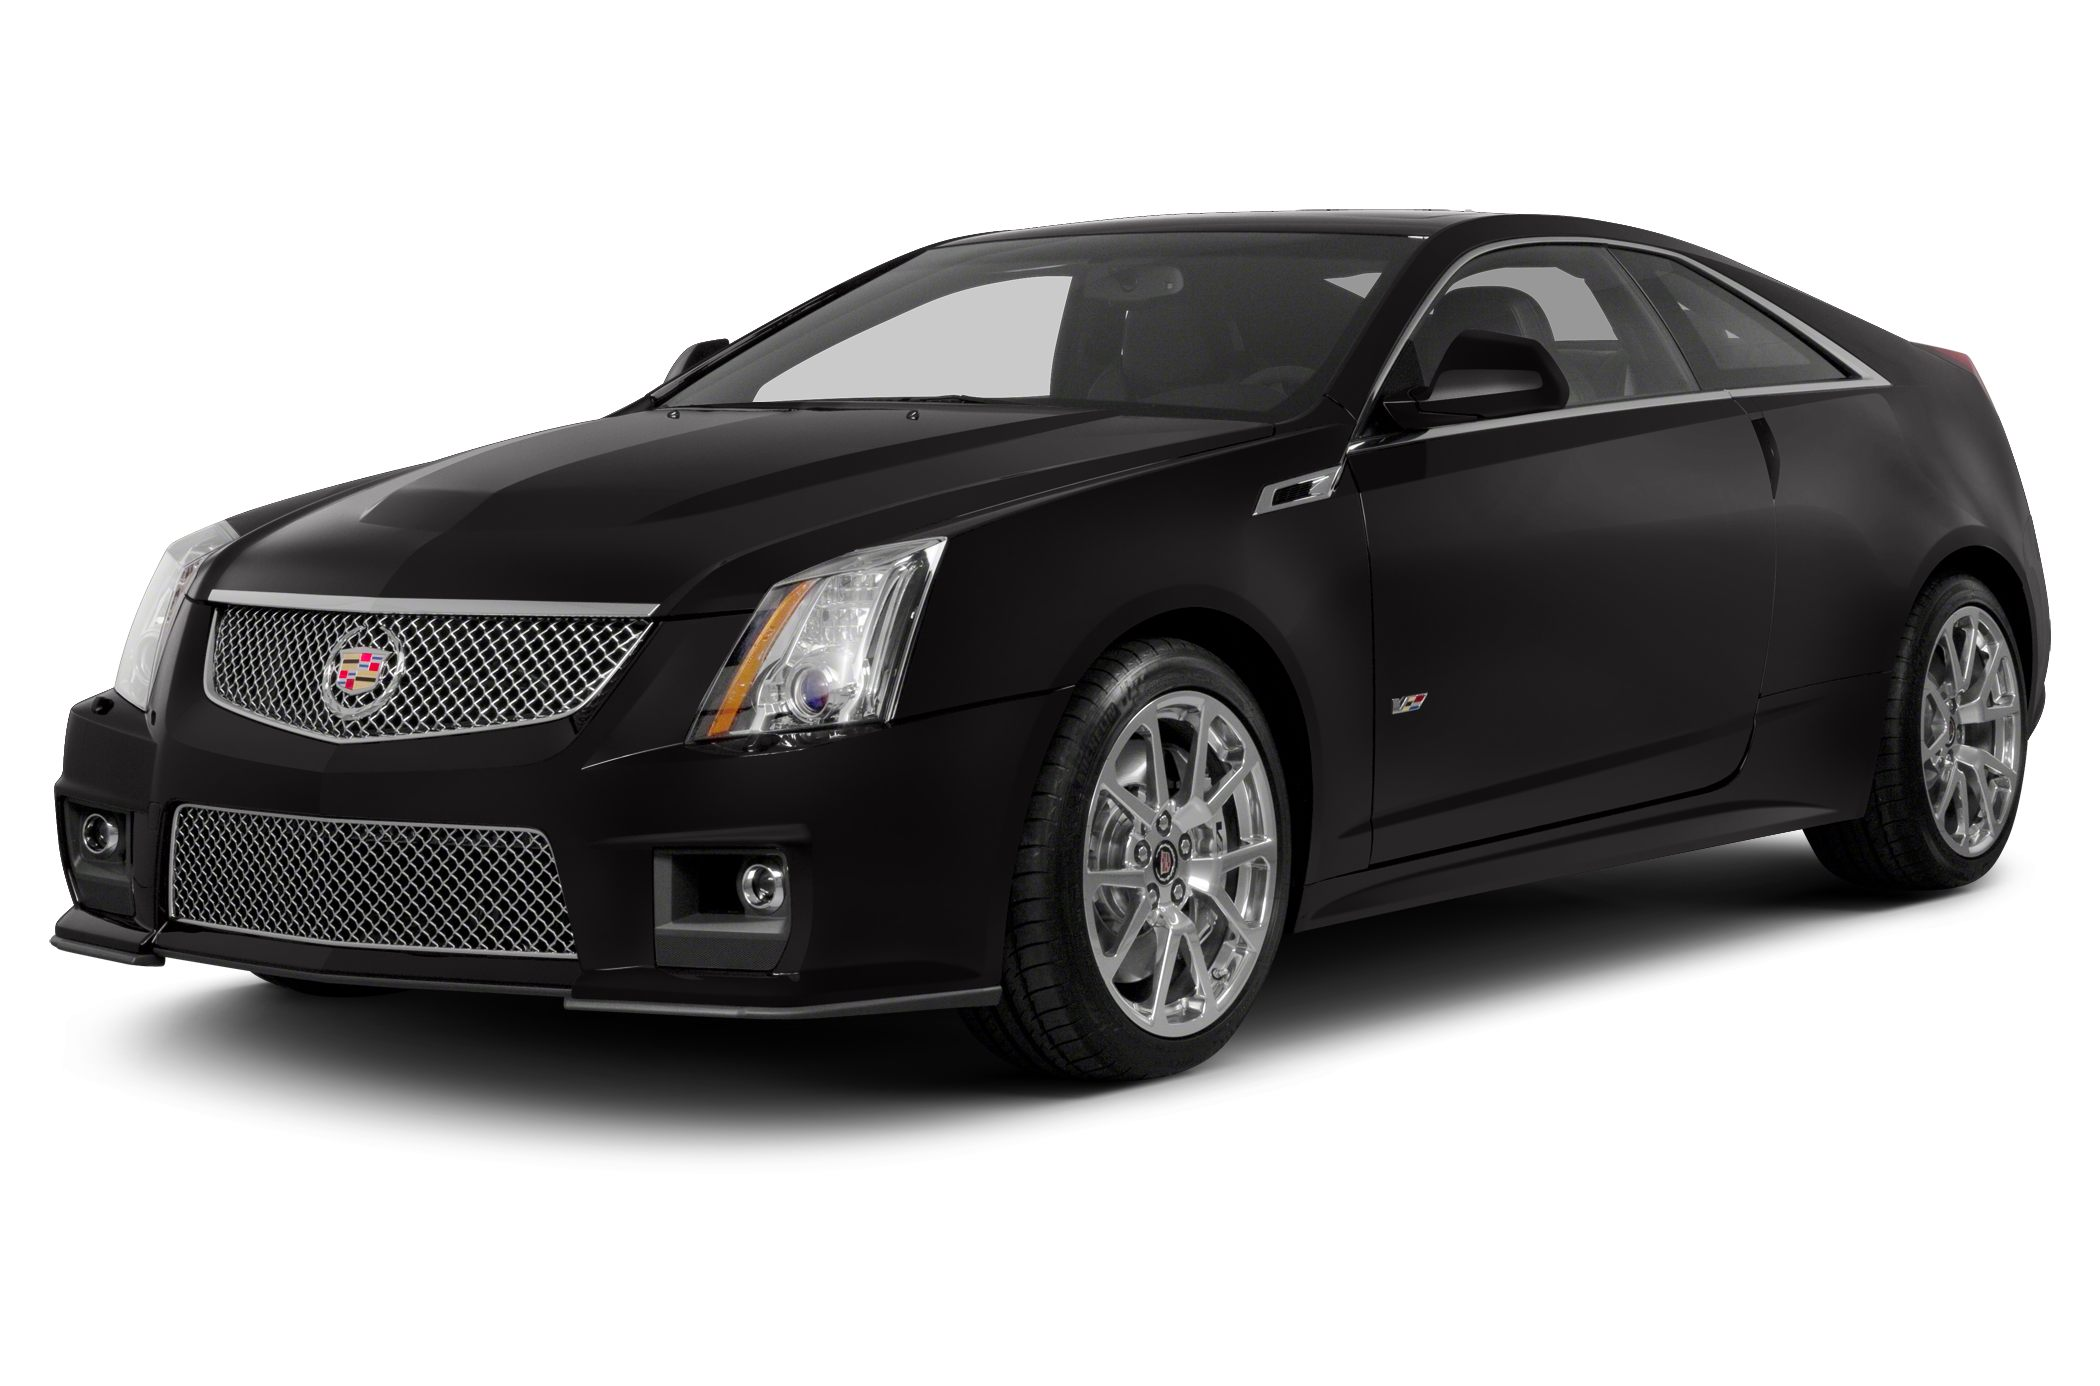 2013 Cadillac CTS-V